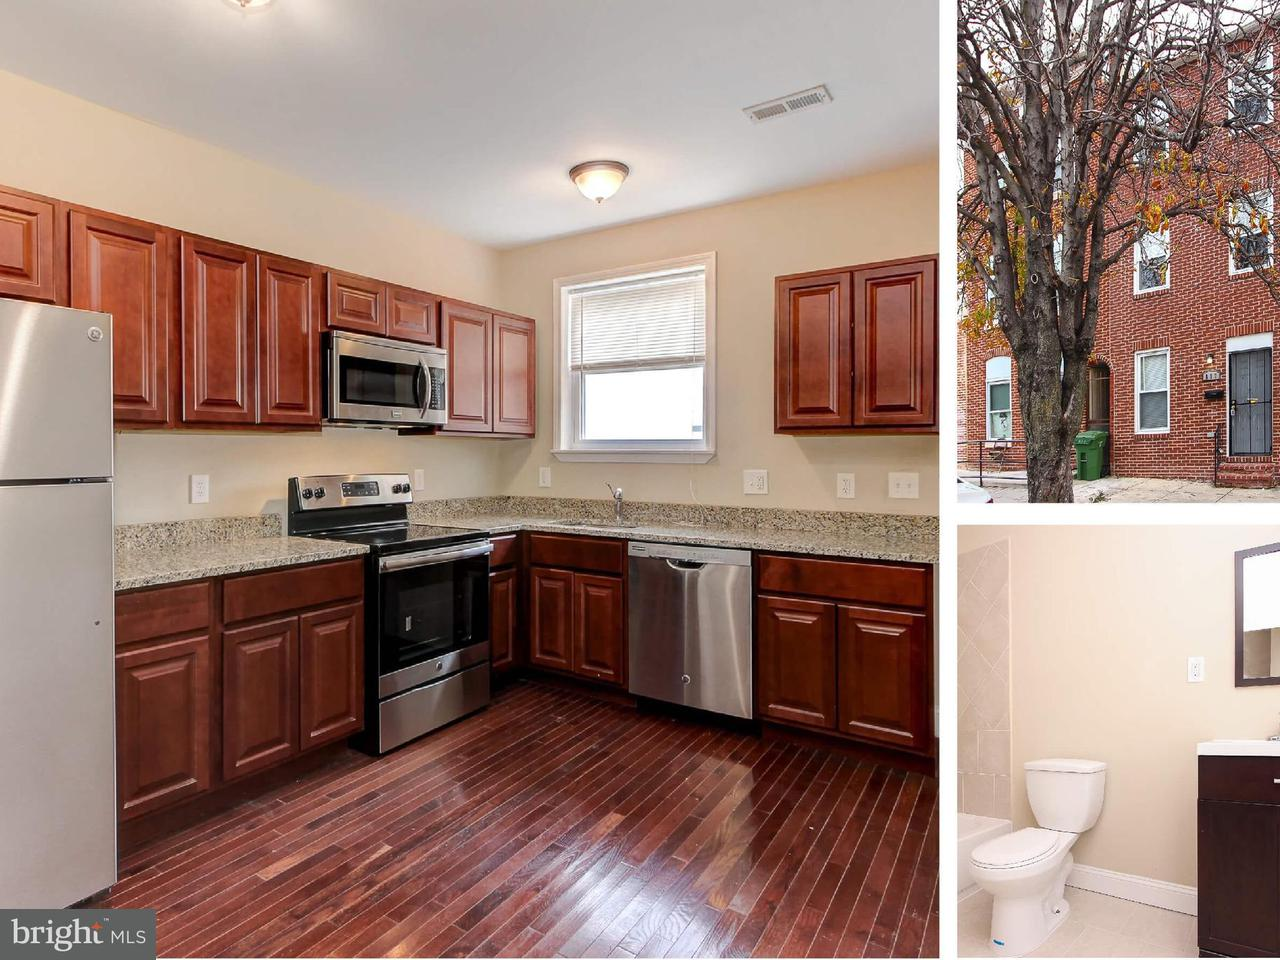 Single Family for Sale at 817 Caroline St N Baltimore, Maryland 21205 United States